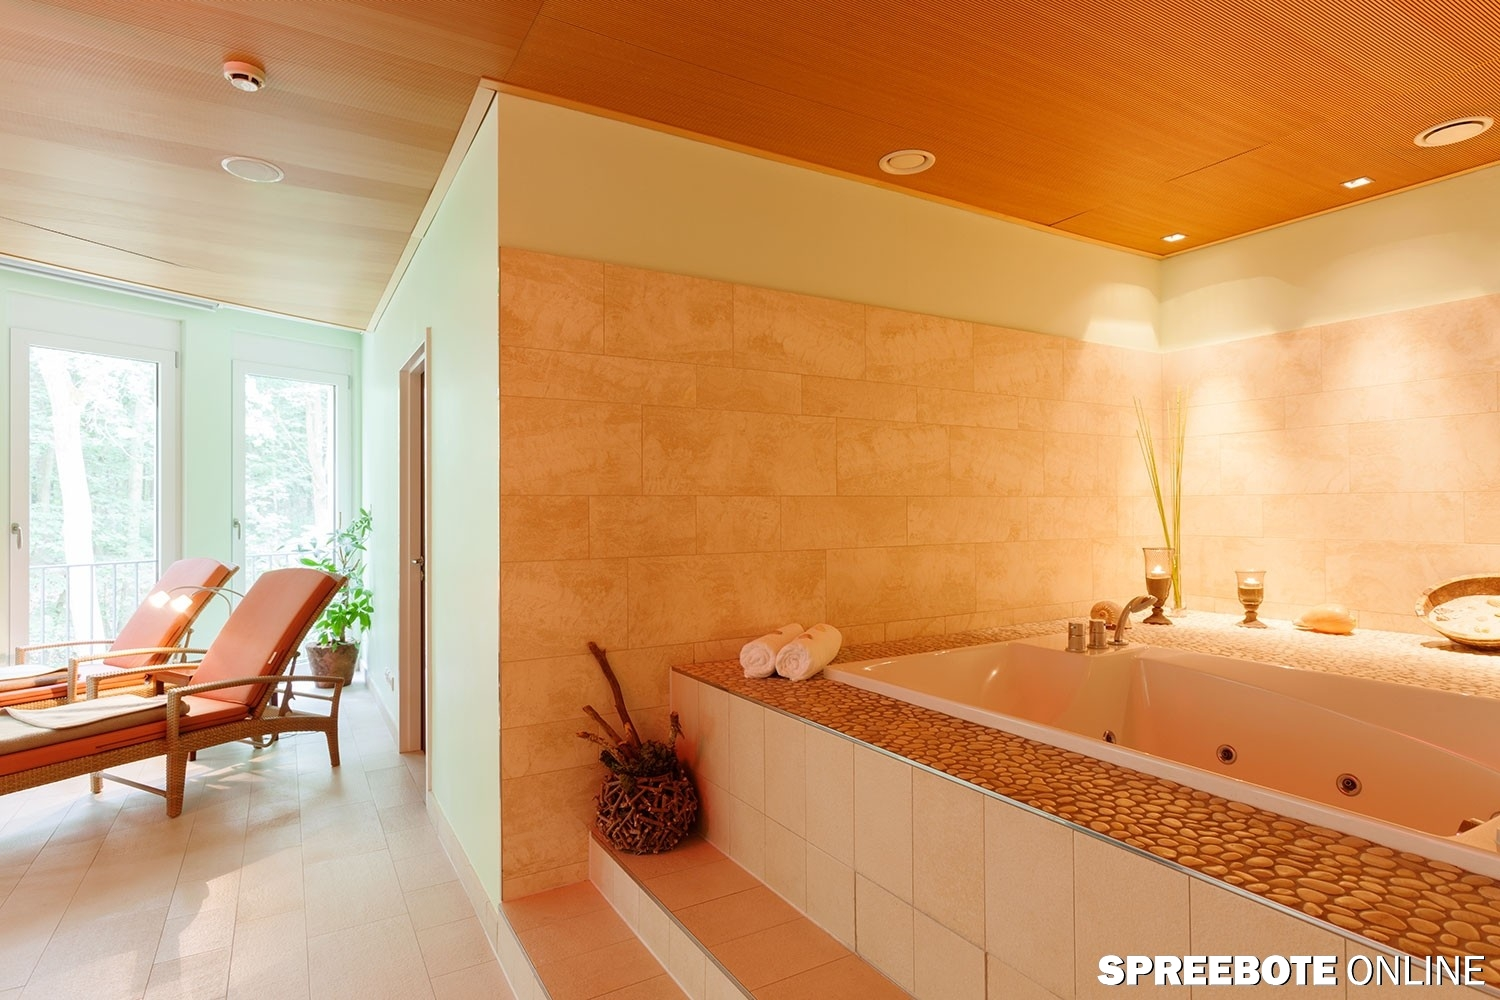 Plastikwanne Groß Arosa Scharmuetzelsee Wellness Beauty Spa Suite Wanne 6531